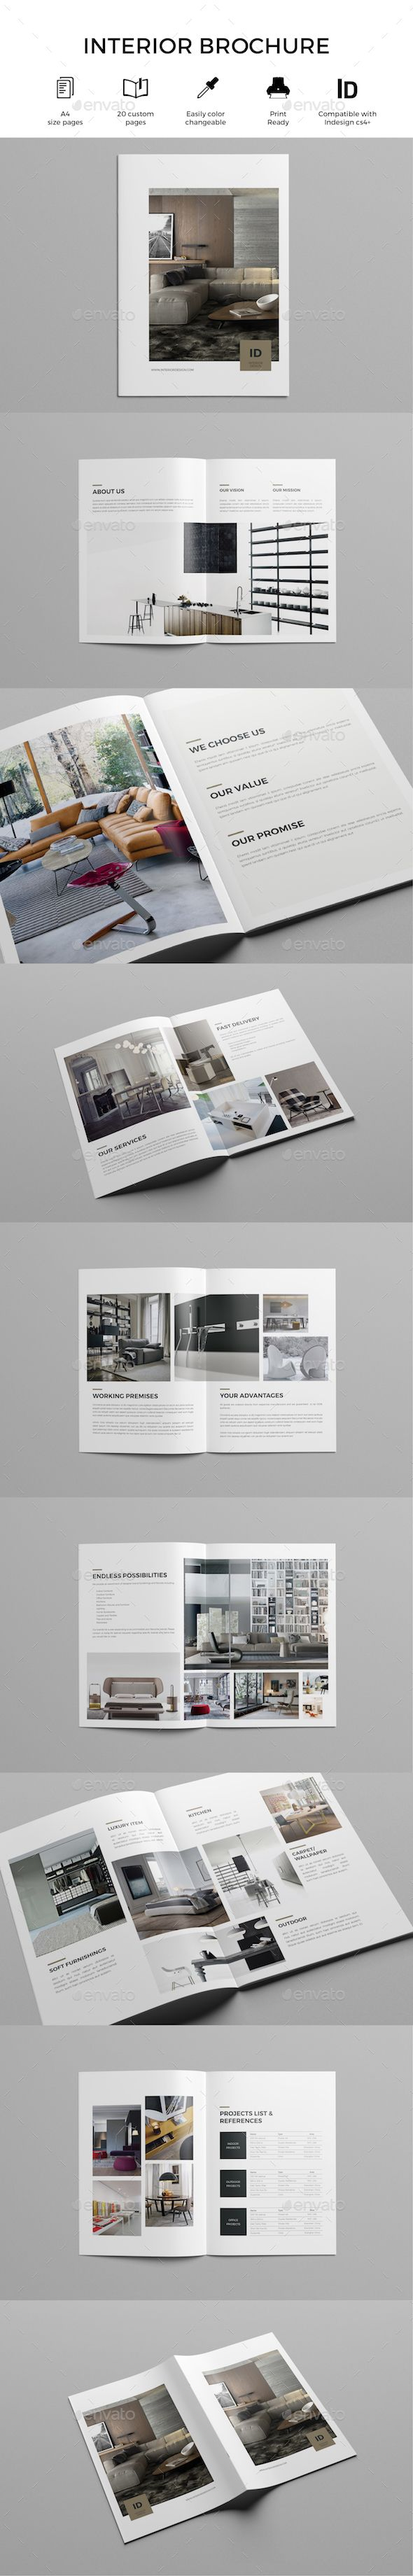 Buy Interior Design Brochure Template By Tontuz On GraphicRiver